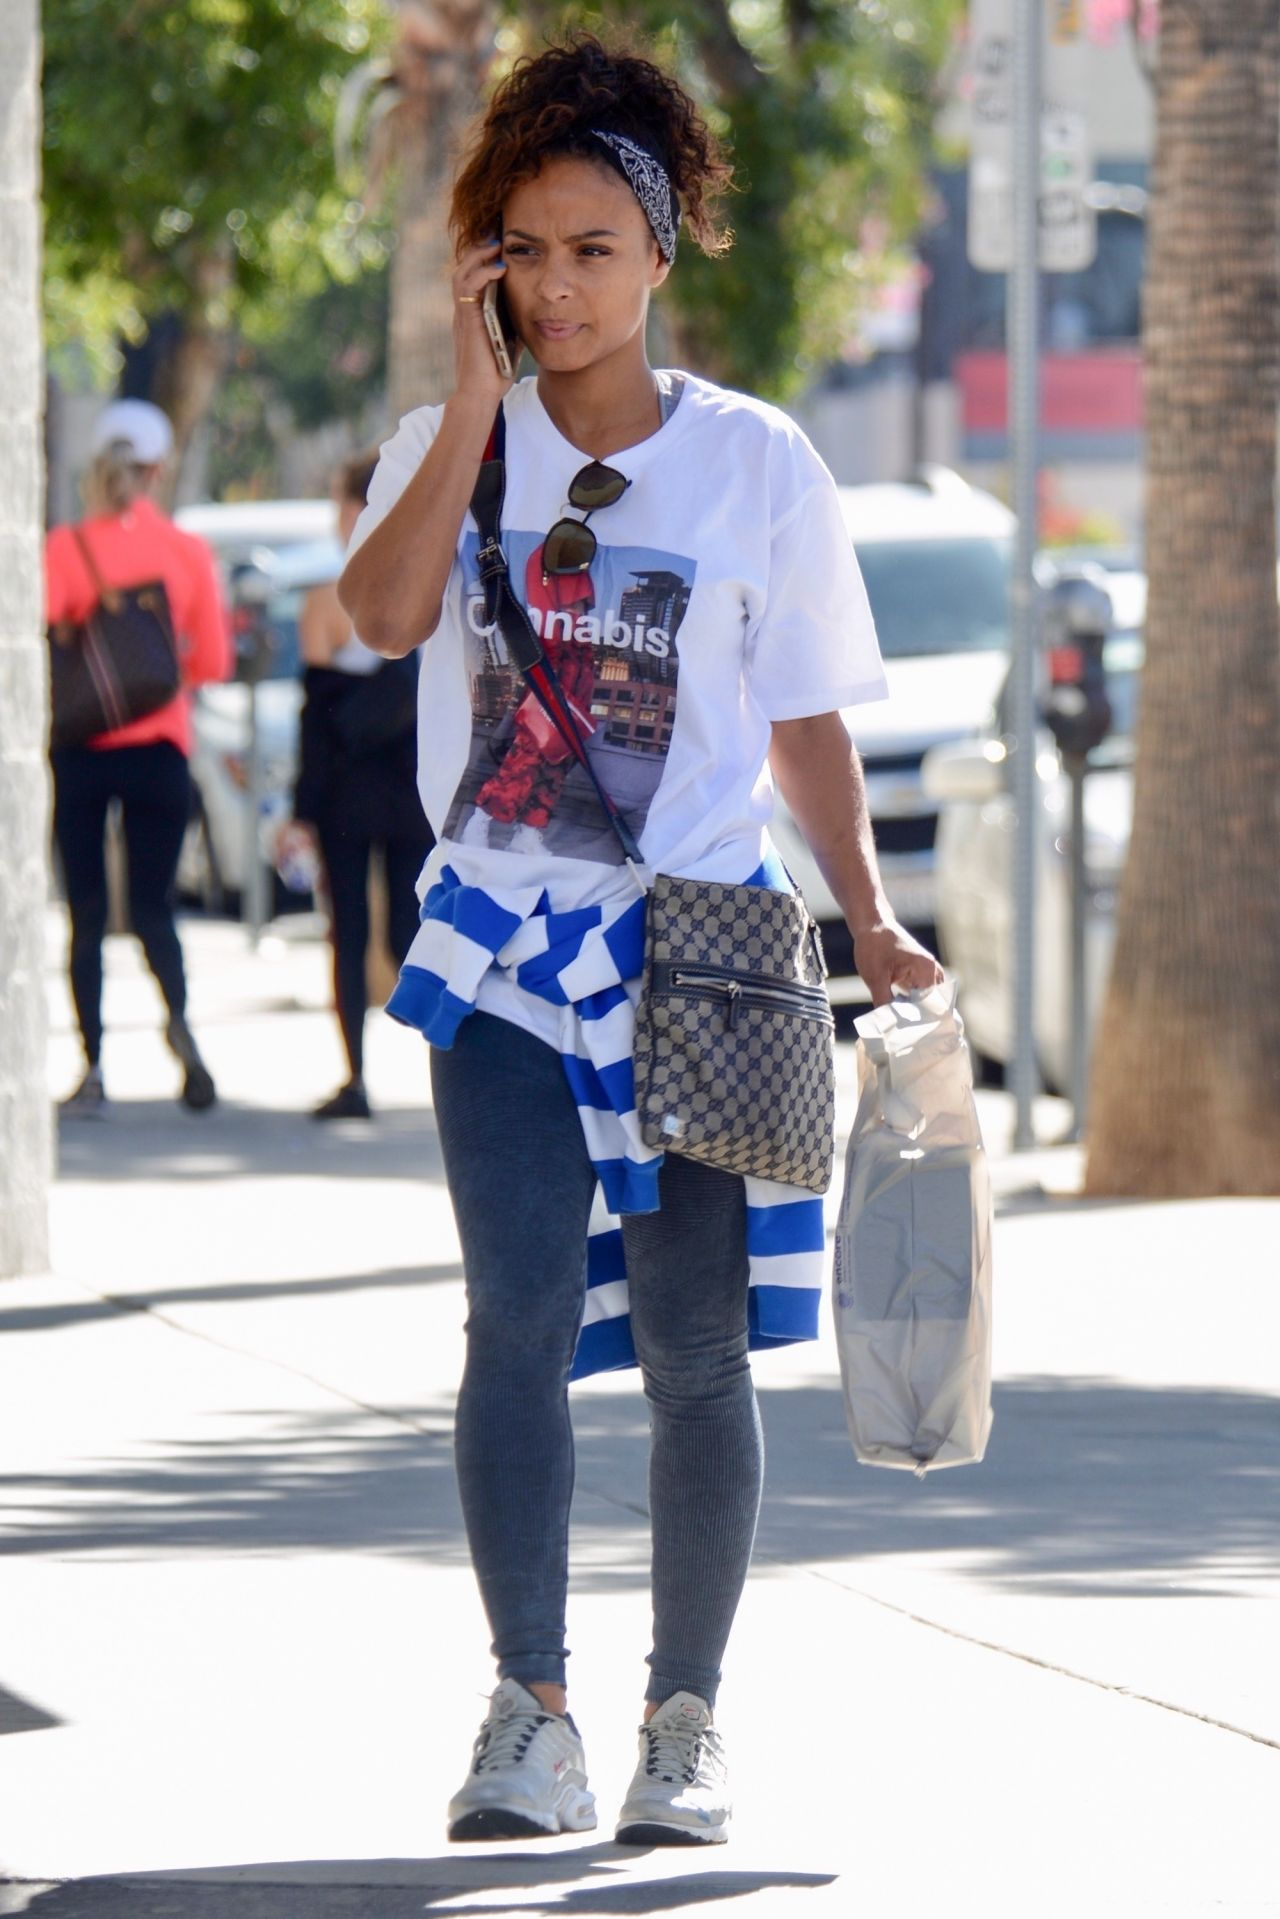 Christina milian street style studio city naked (43 photo), Cleavage Celebrites pic